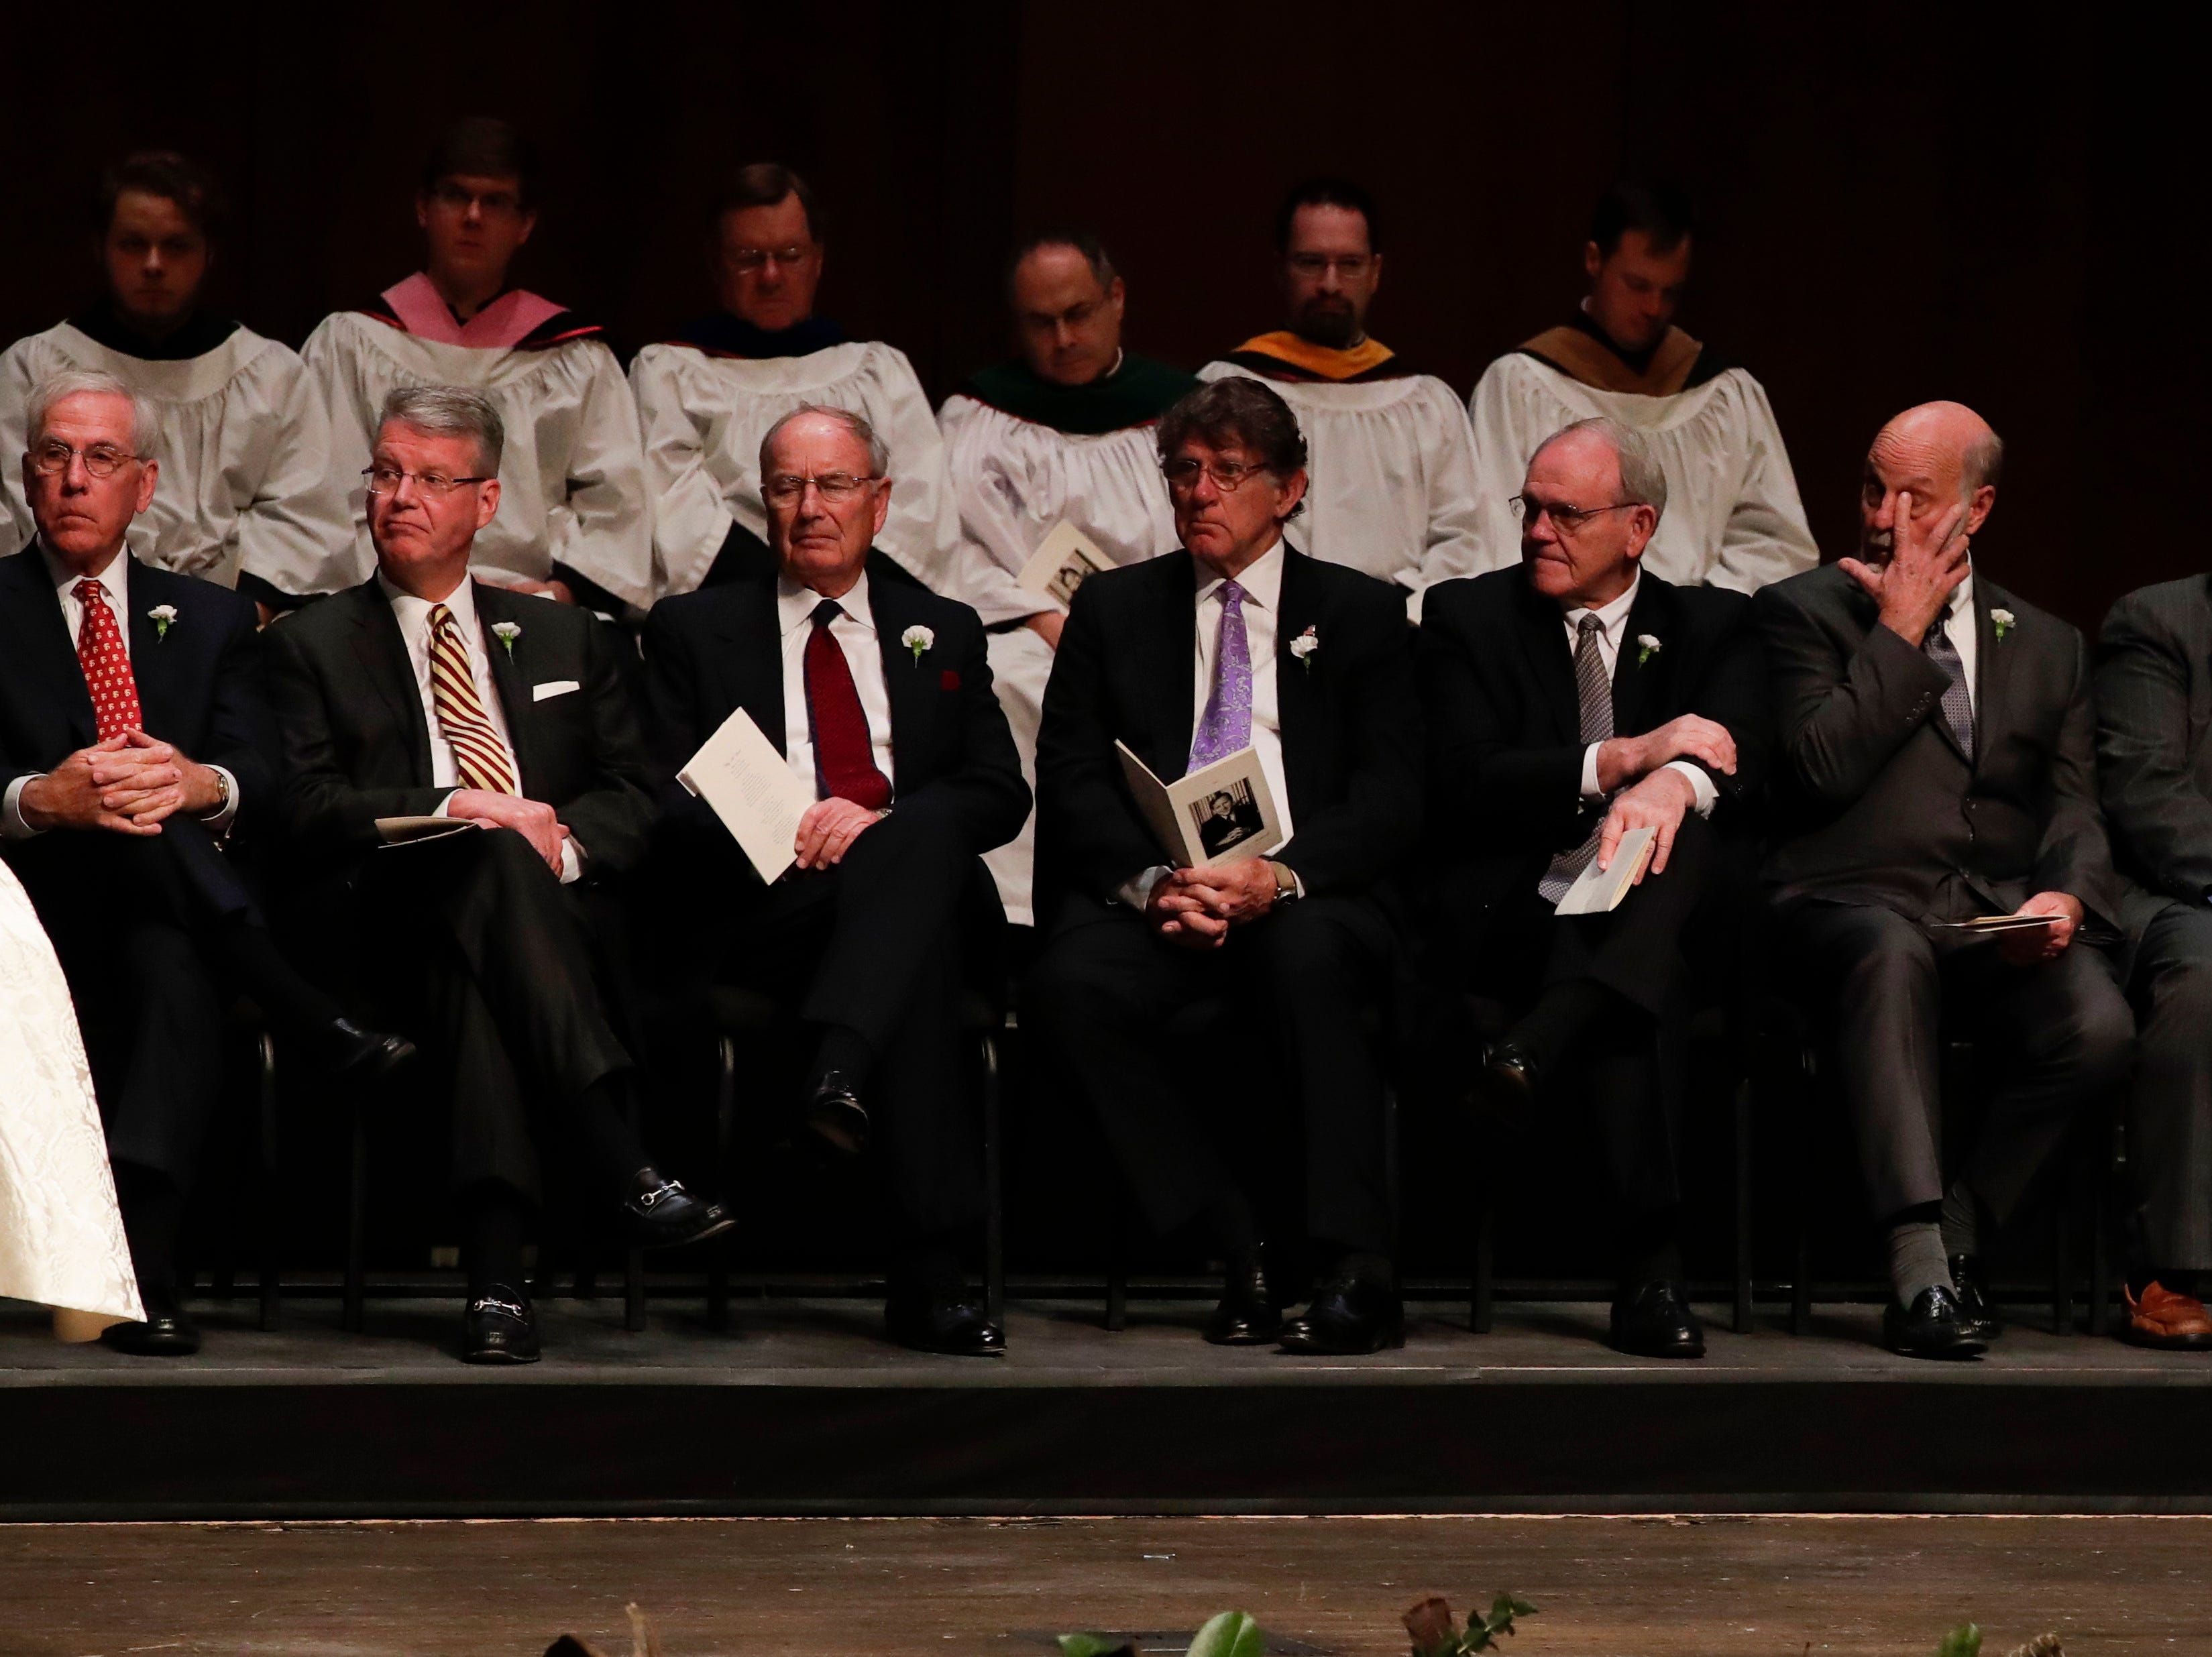 Pall bearers listen as Bob Williamson shares his words of remembrance during a funeral service for Florida State University President Emeritus T.K. Wetherell held at Ruby Diamond Concert Hall Friday, Dec. 21, 2018.